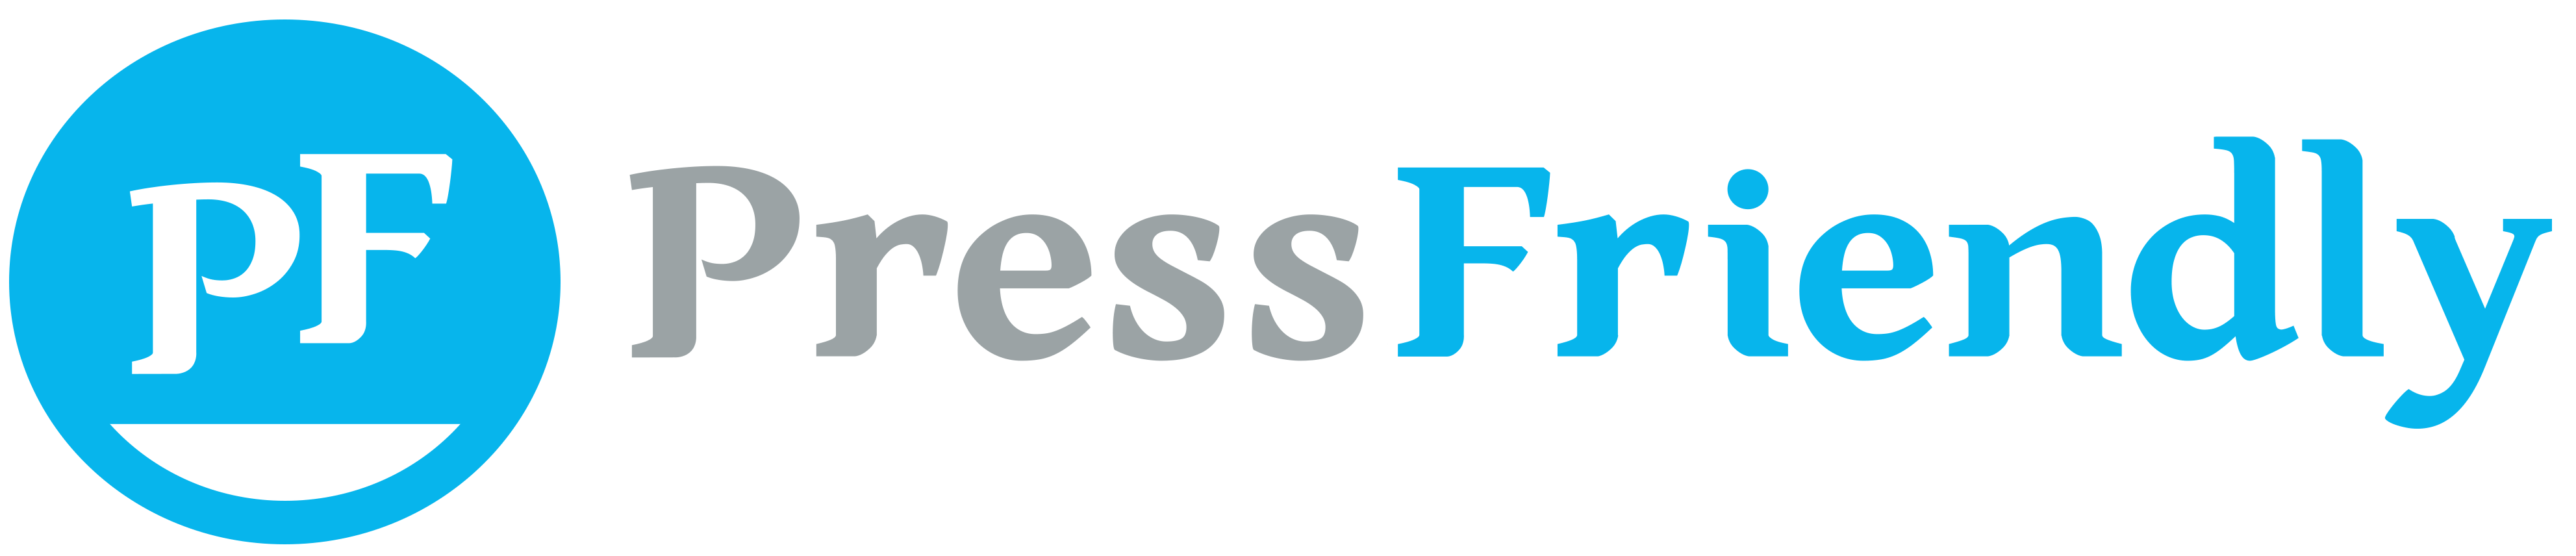 PressFriendly logo